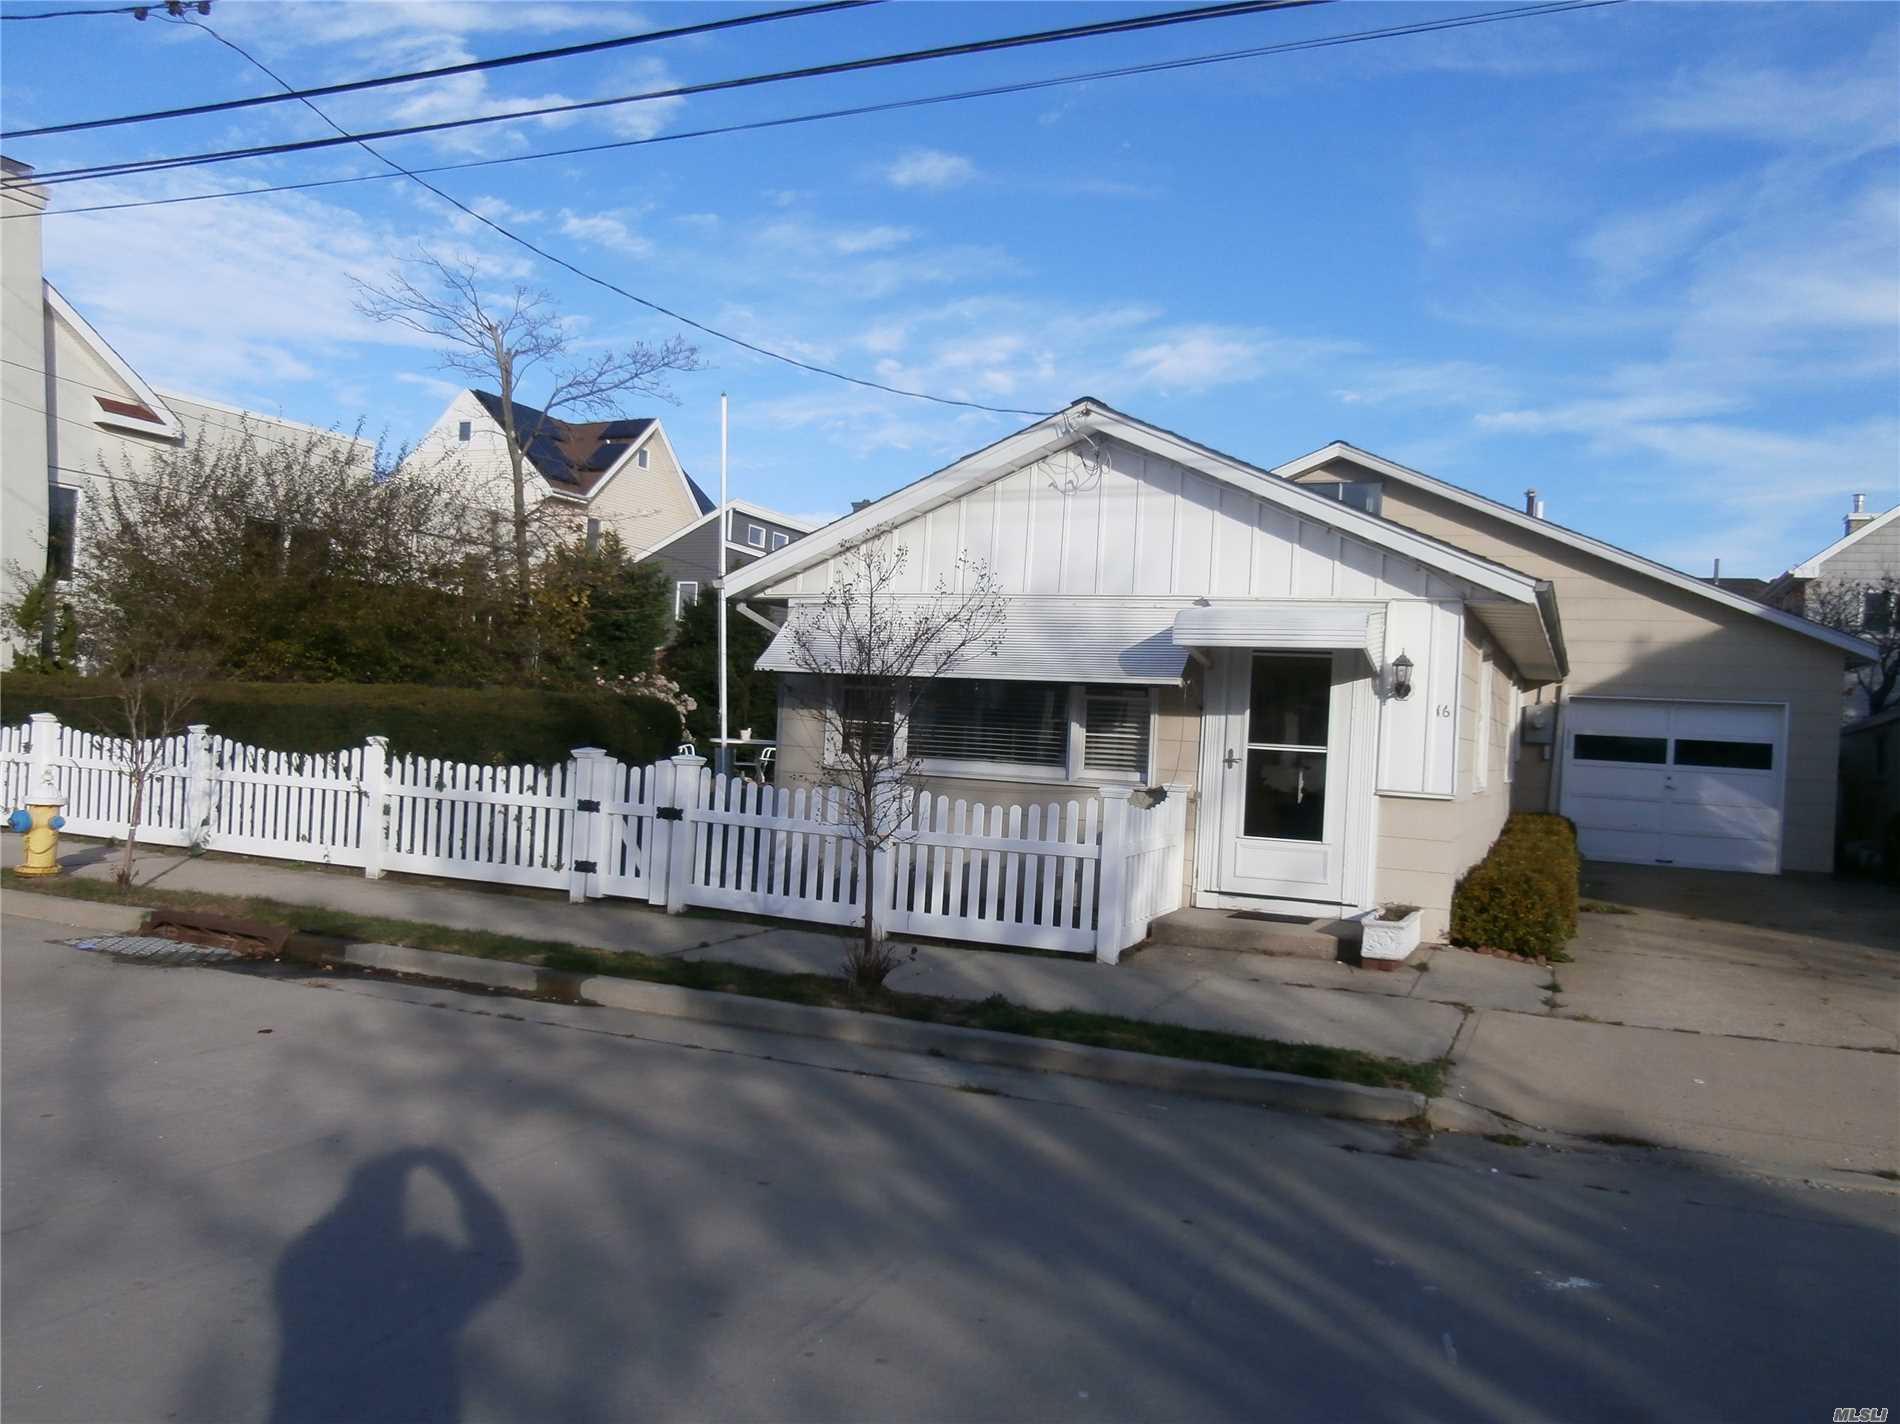 *Updated Ranch Cottage On Two Lots, 2/3 Bedrooms, Bath, Living Room, Dining Area, Office Area, Updated Kitchen, New On Demand Heating And Hot Water System, Laundry Area, Wood Floors, Covered Patio, Garden, Garage, Parking, Beach Rights. Priced To Sell!